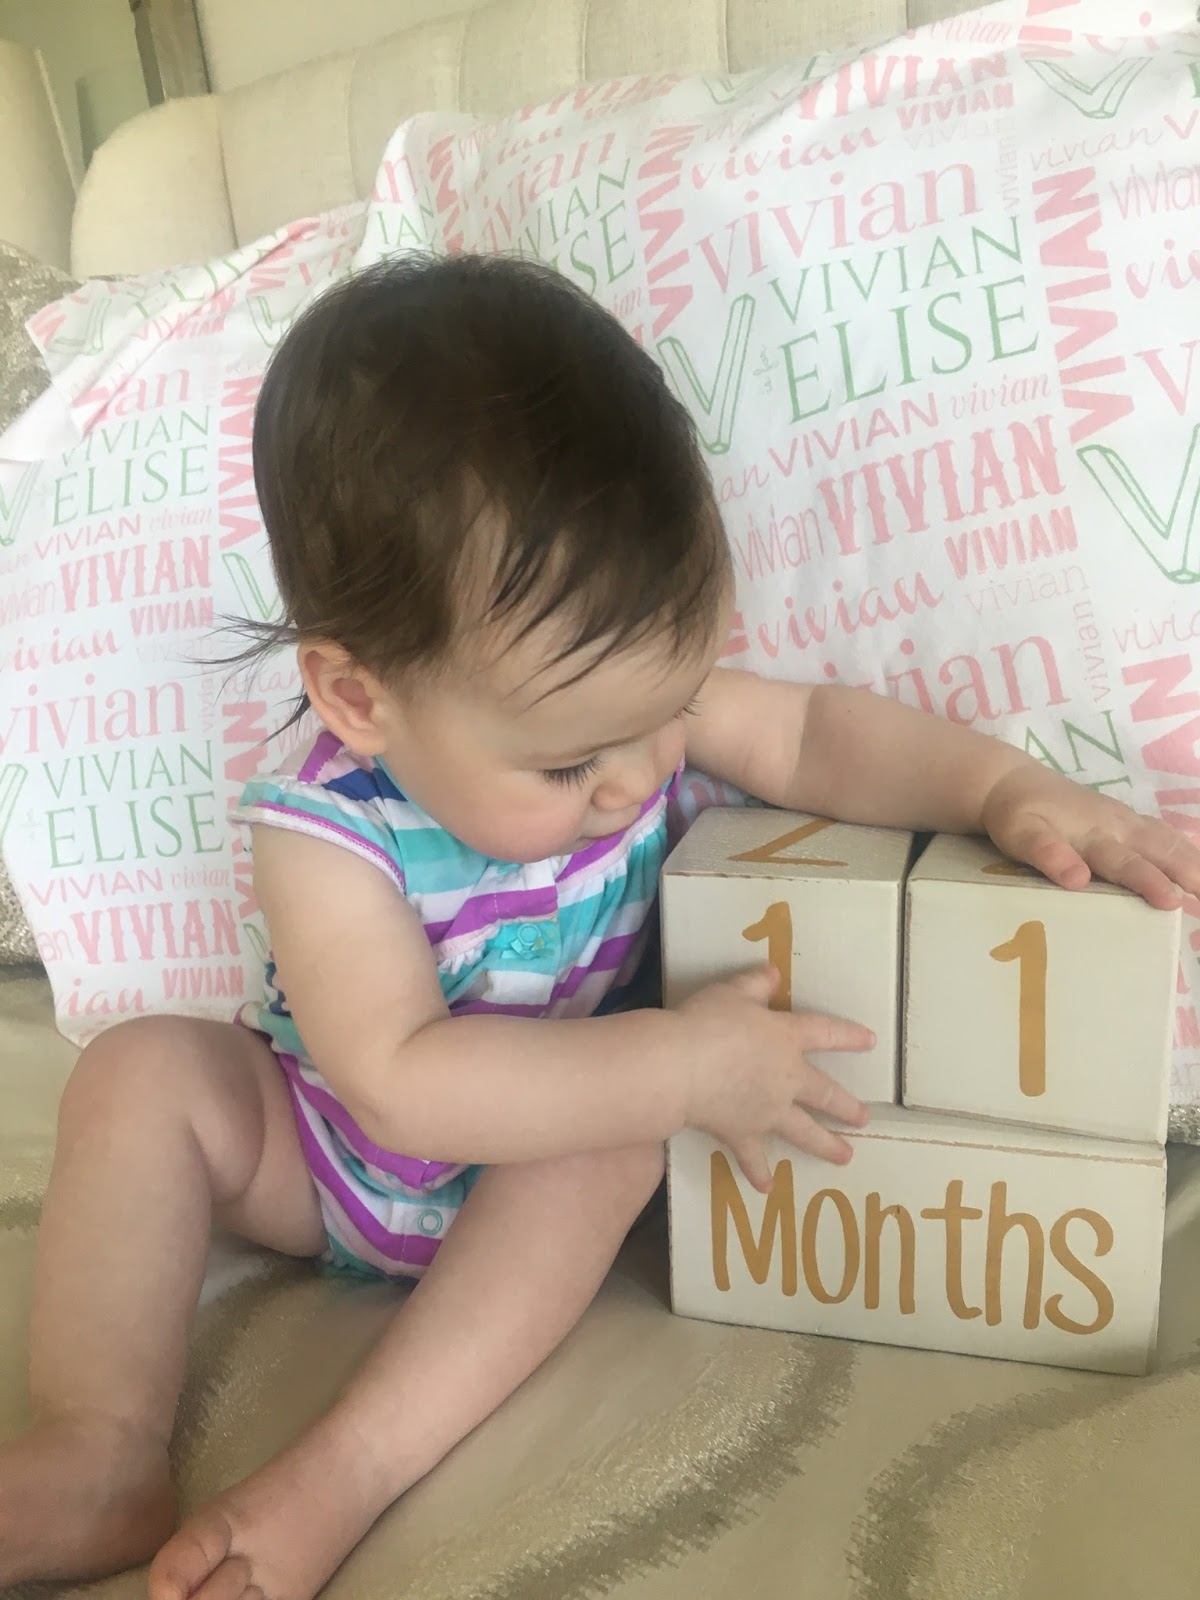 Baby Only Drinks 2 Oz At A Time Team Bruns Blog Vivian Elise Is 11 Months